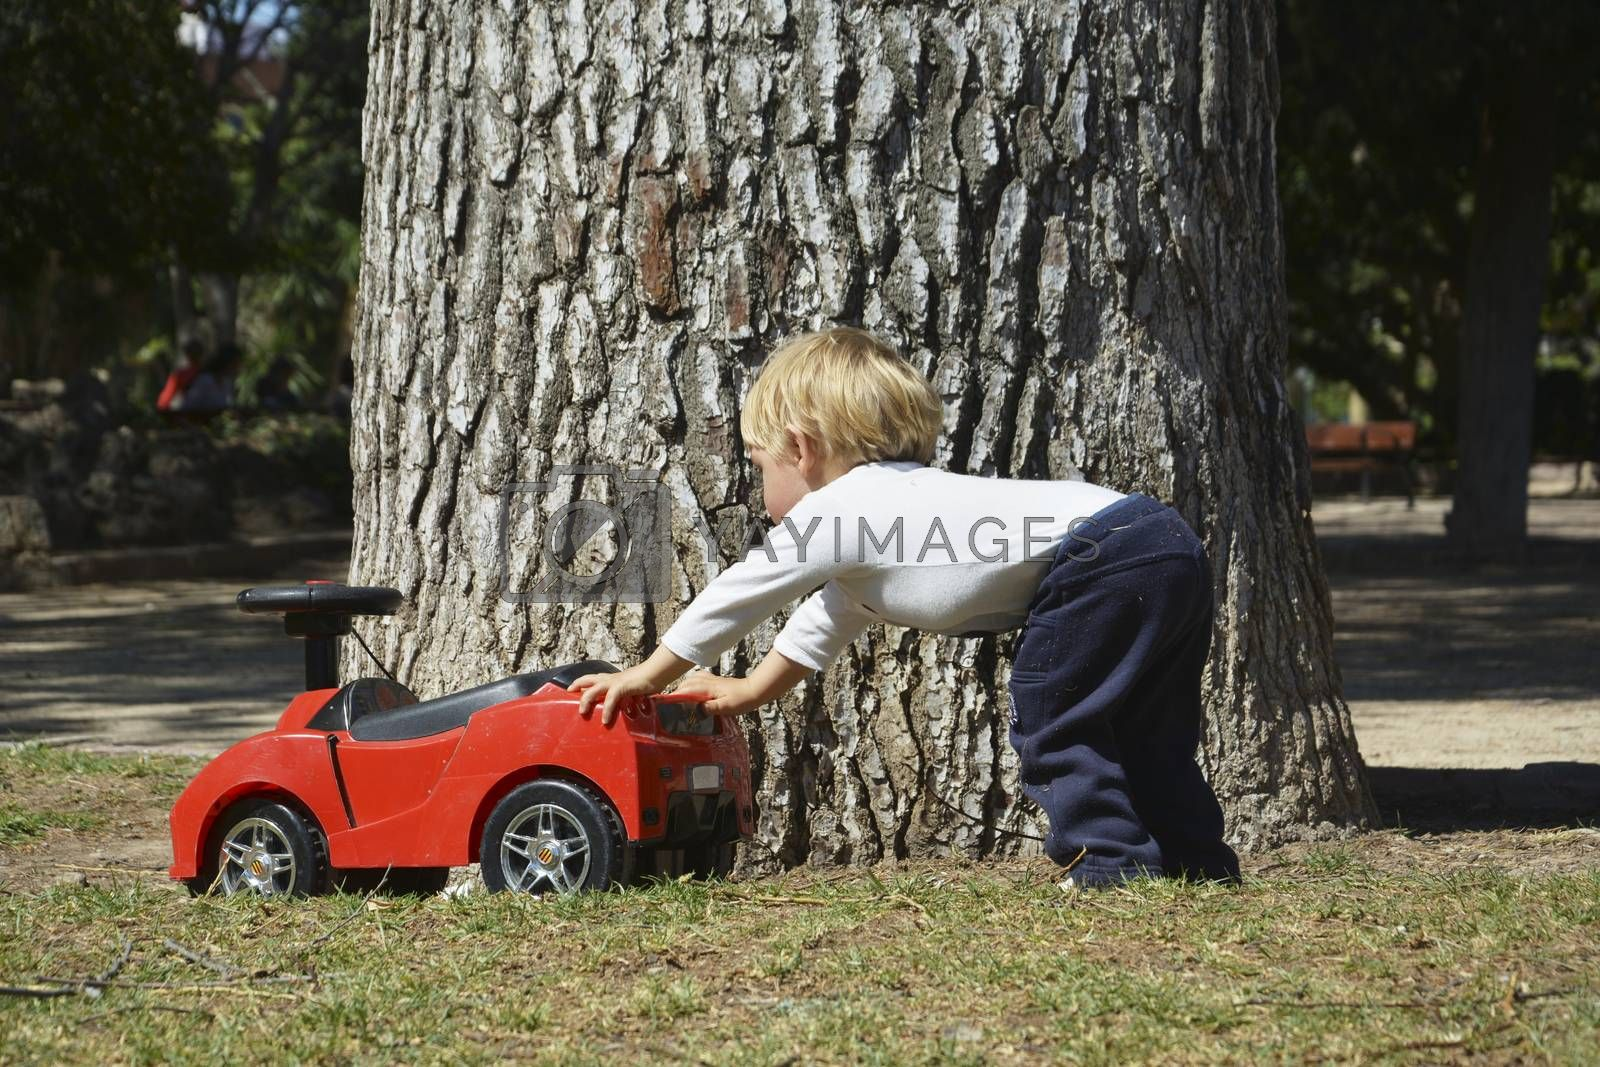 Blond boy playing with his red toy car, Lifestyle